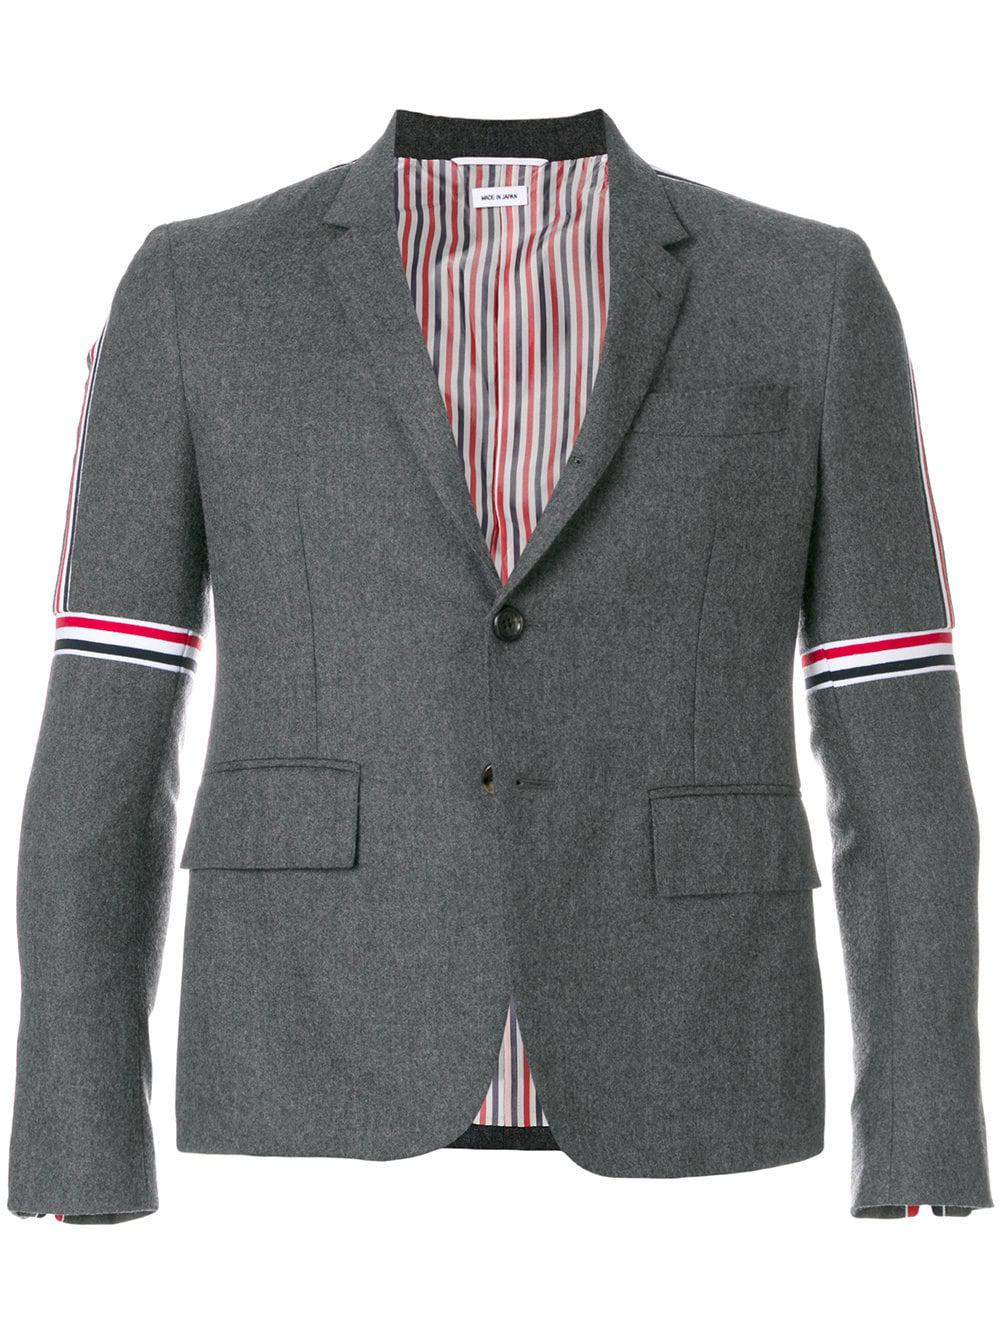 68f7347814c Thom Browne Wool Jacket With Stripes On Shoulders in Gray for Men - Lyst